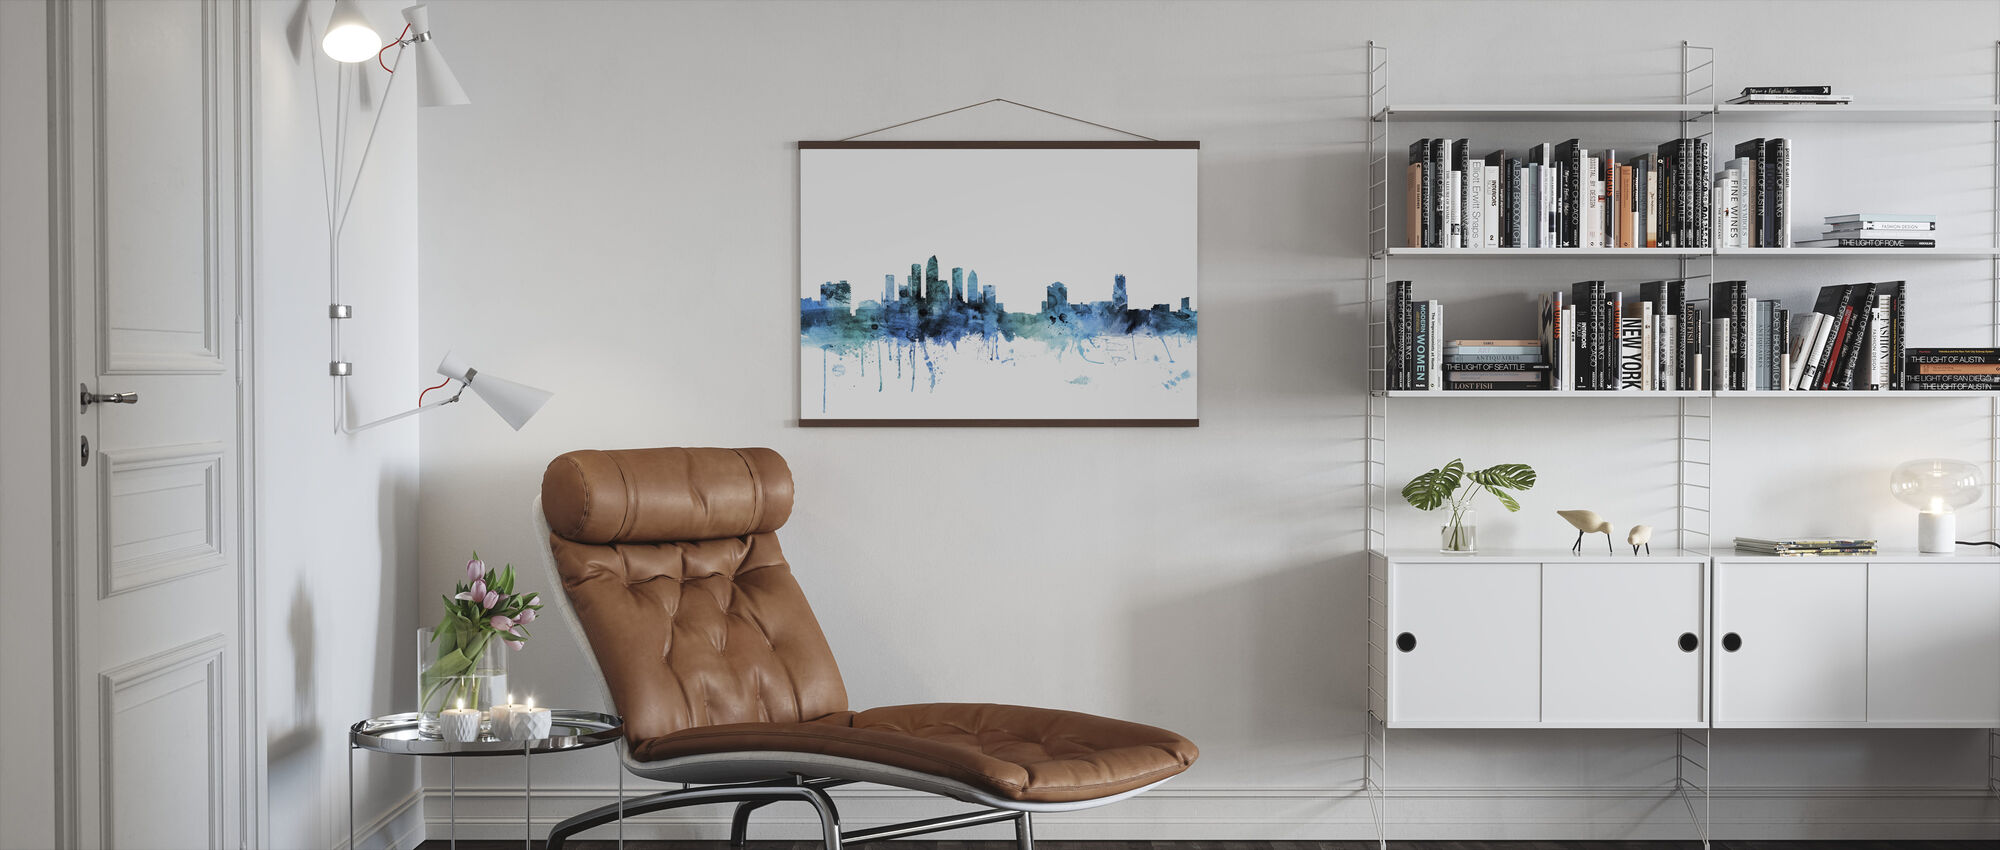 Tampa Florida Skyline - Poster - Living Room